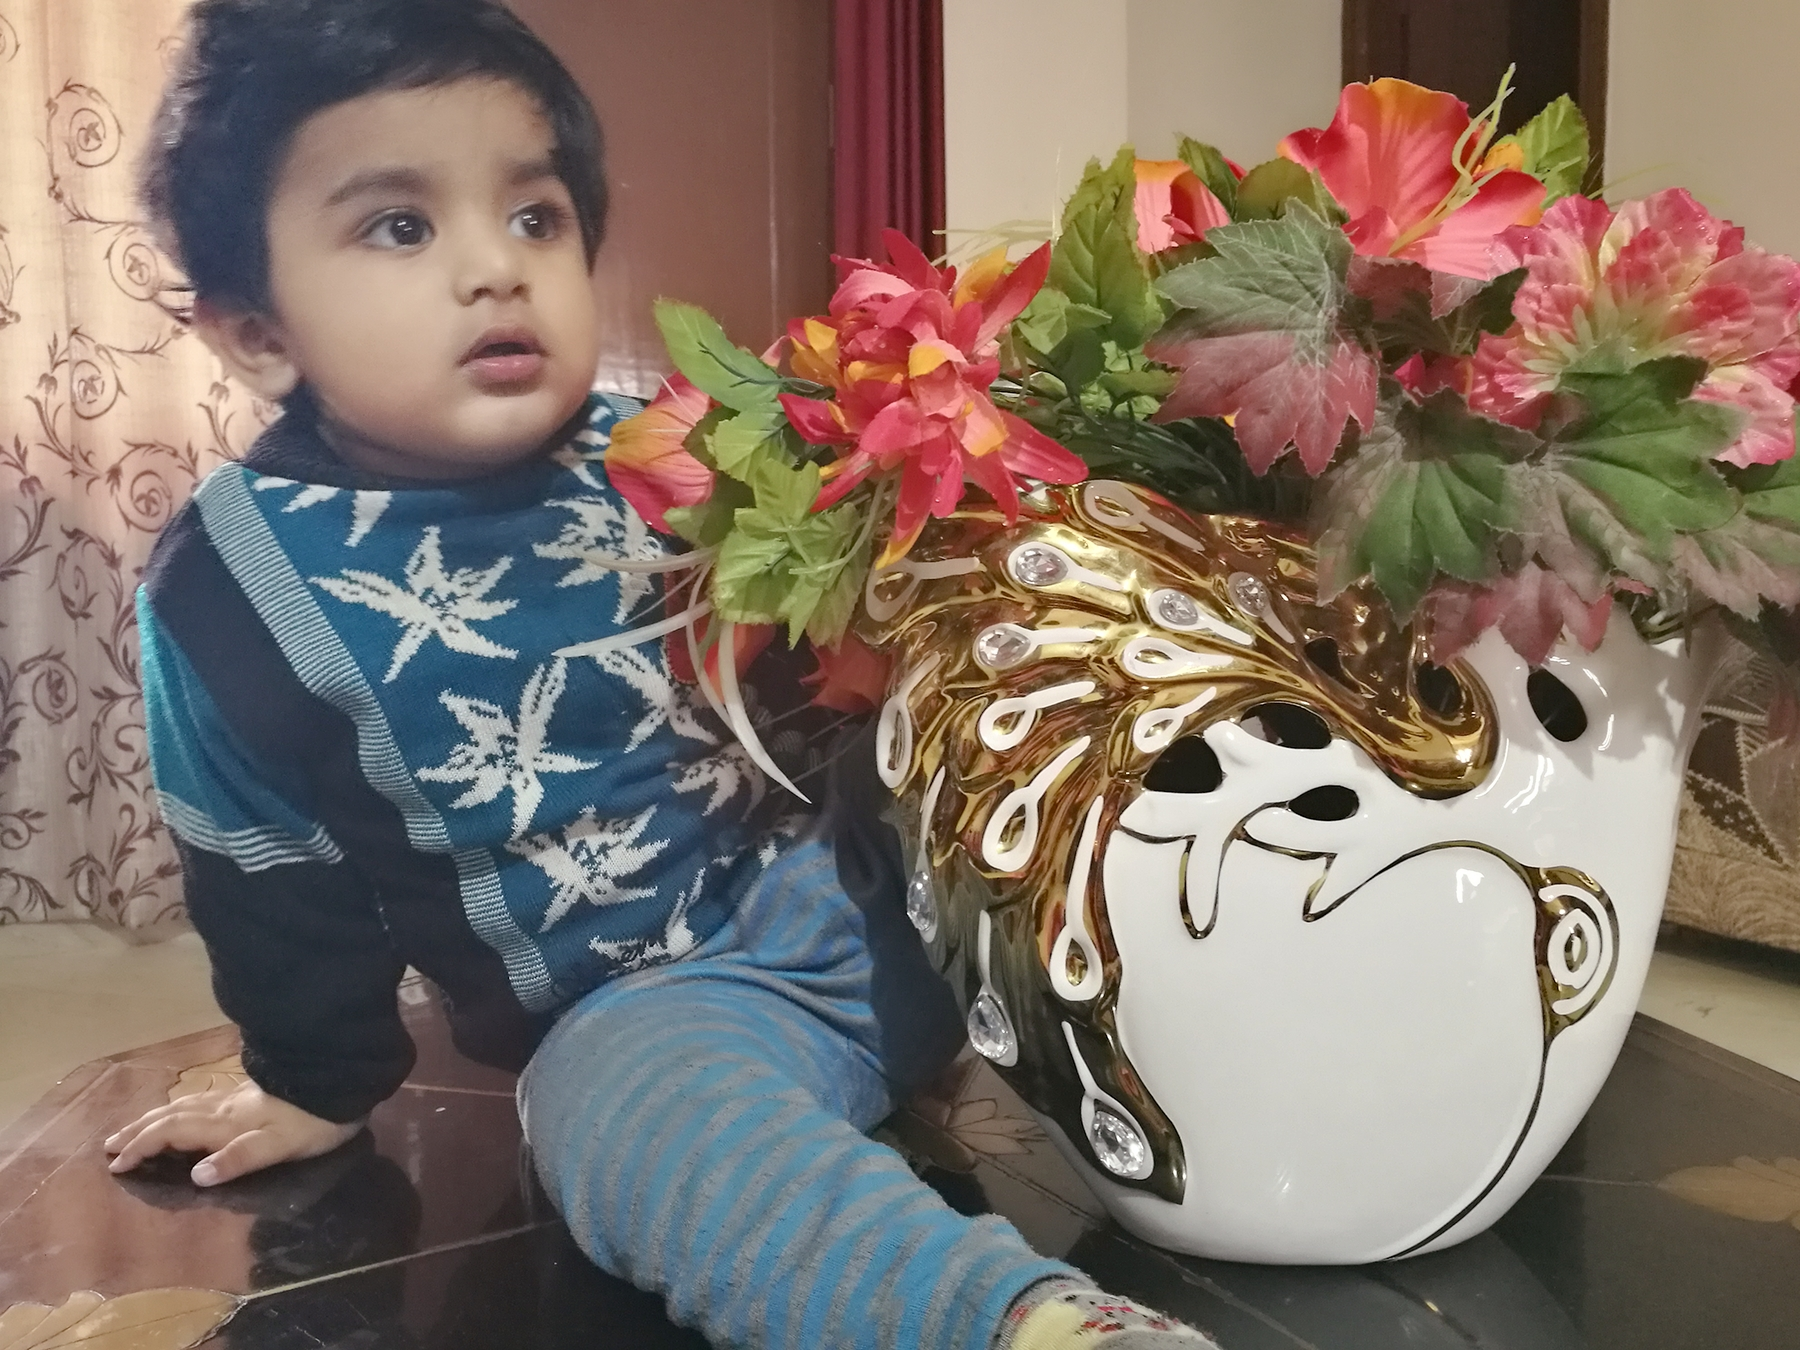 Schedule For a Toddler in Winters|1 to 3 years old